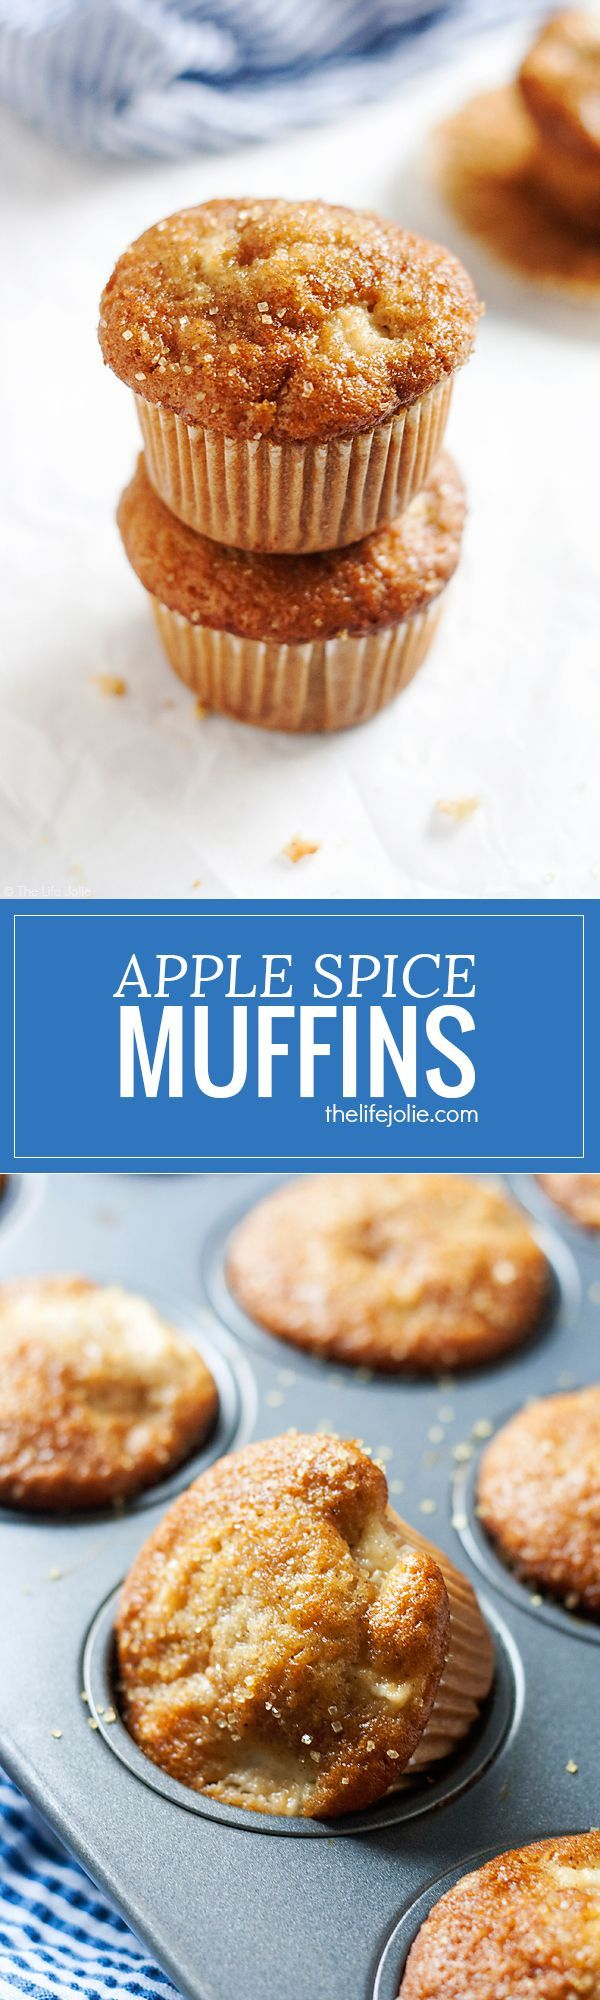 Apple Spice Muffins are one of my favorite fall recipes. Made with tasty chunks of apple, applesauce with cinnamon, nutmeg and ginger, they're so easy to make and taste great as breakfast or as a dessert!